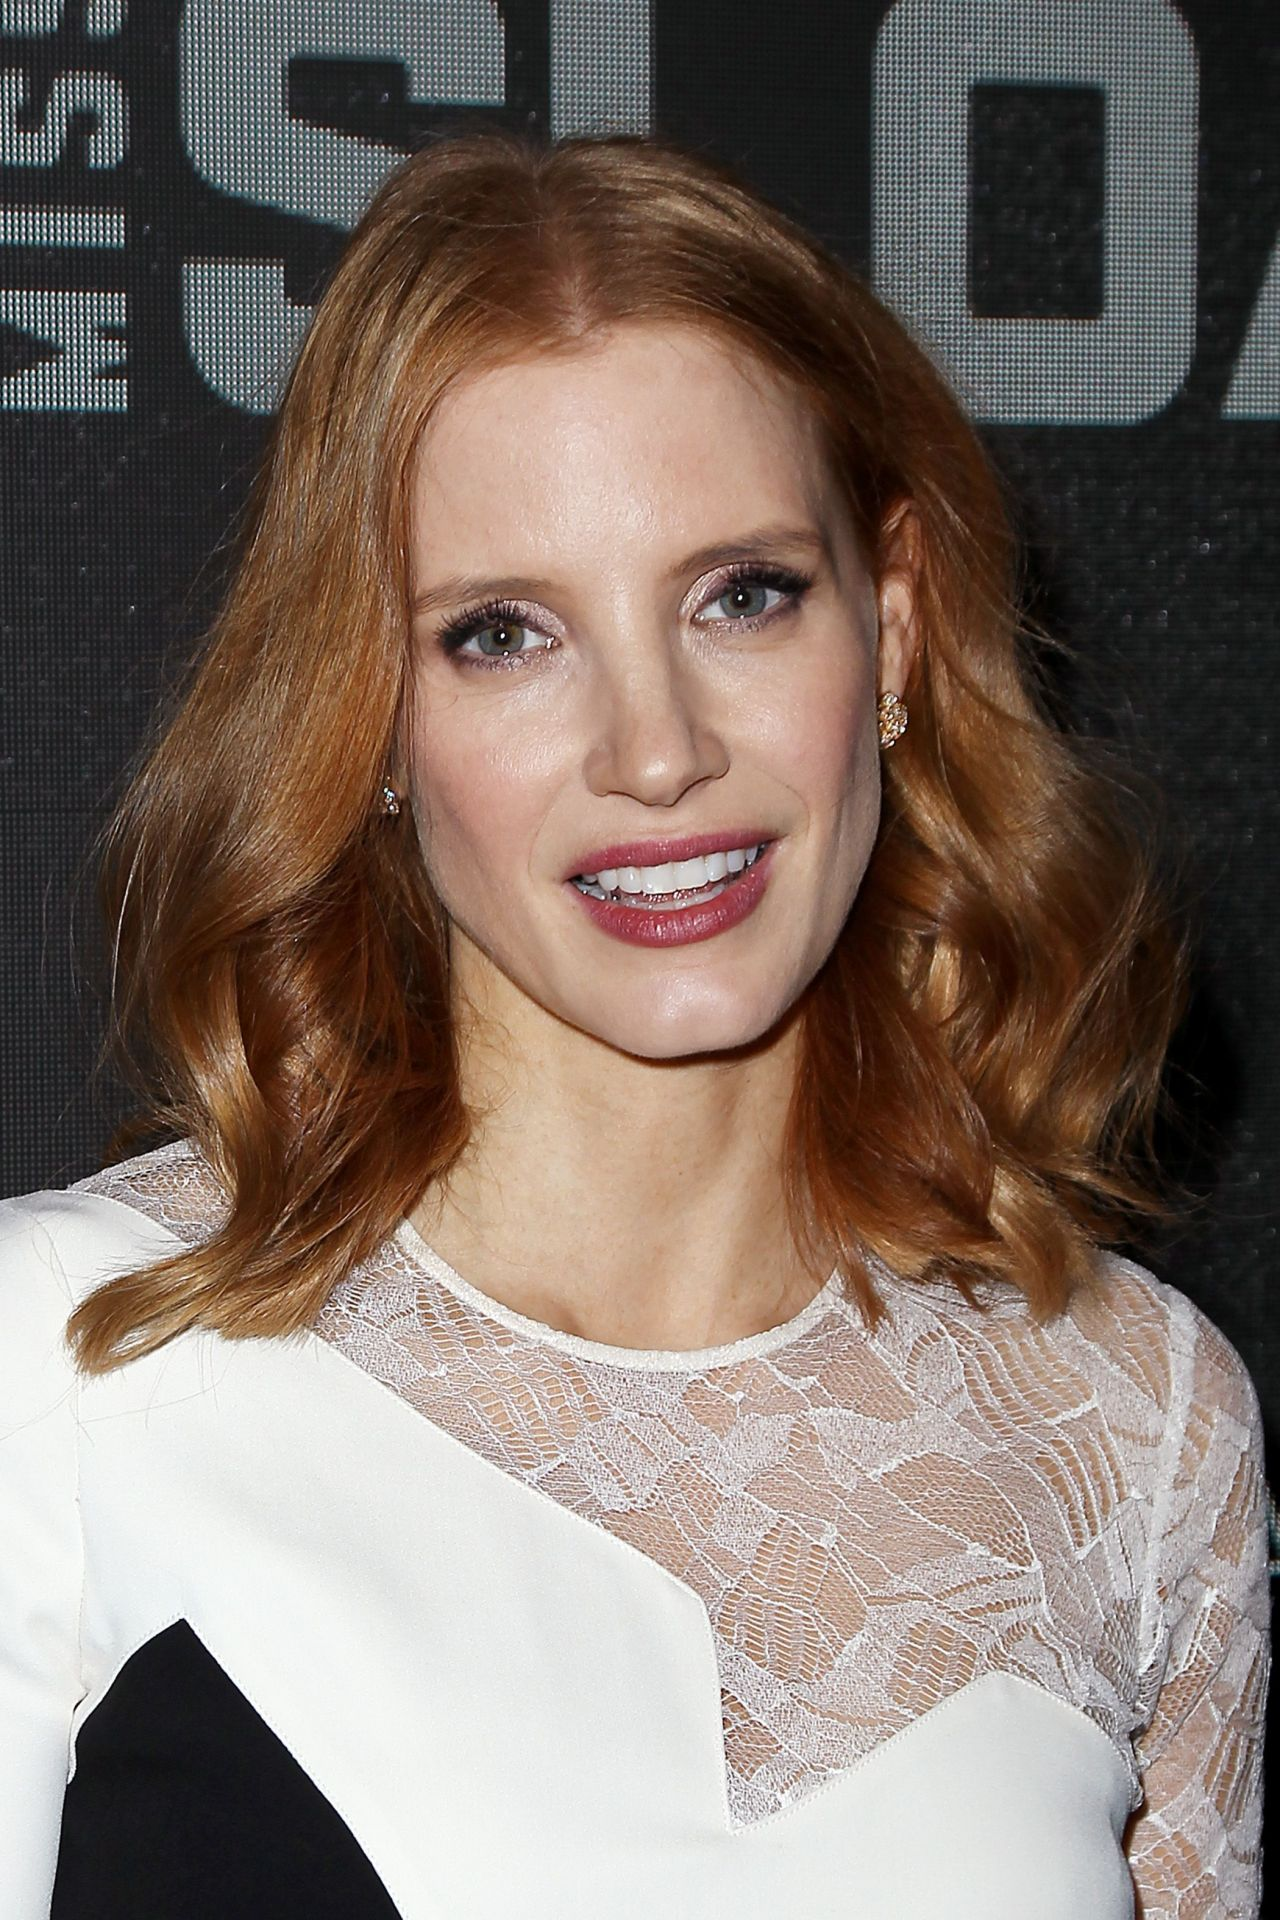 Jessica Chastain - 'Miss Sloane' Screening in New York City Jessica Chastain